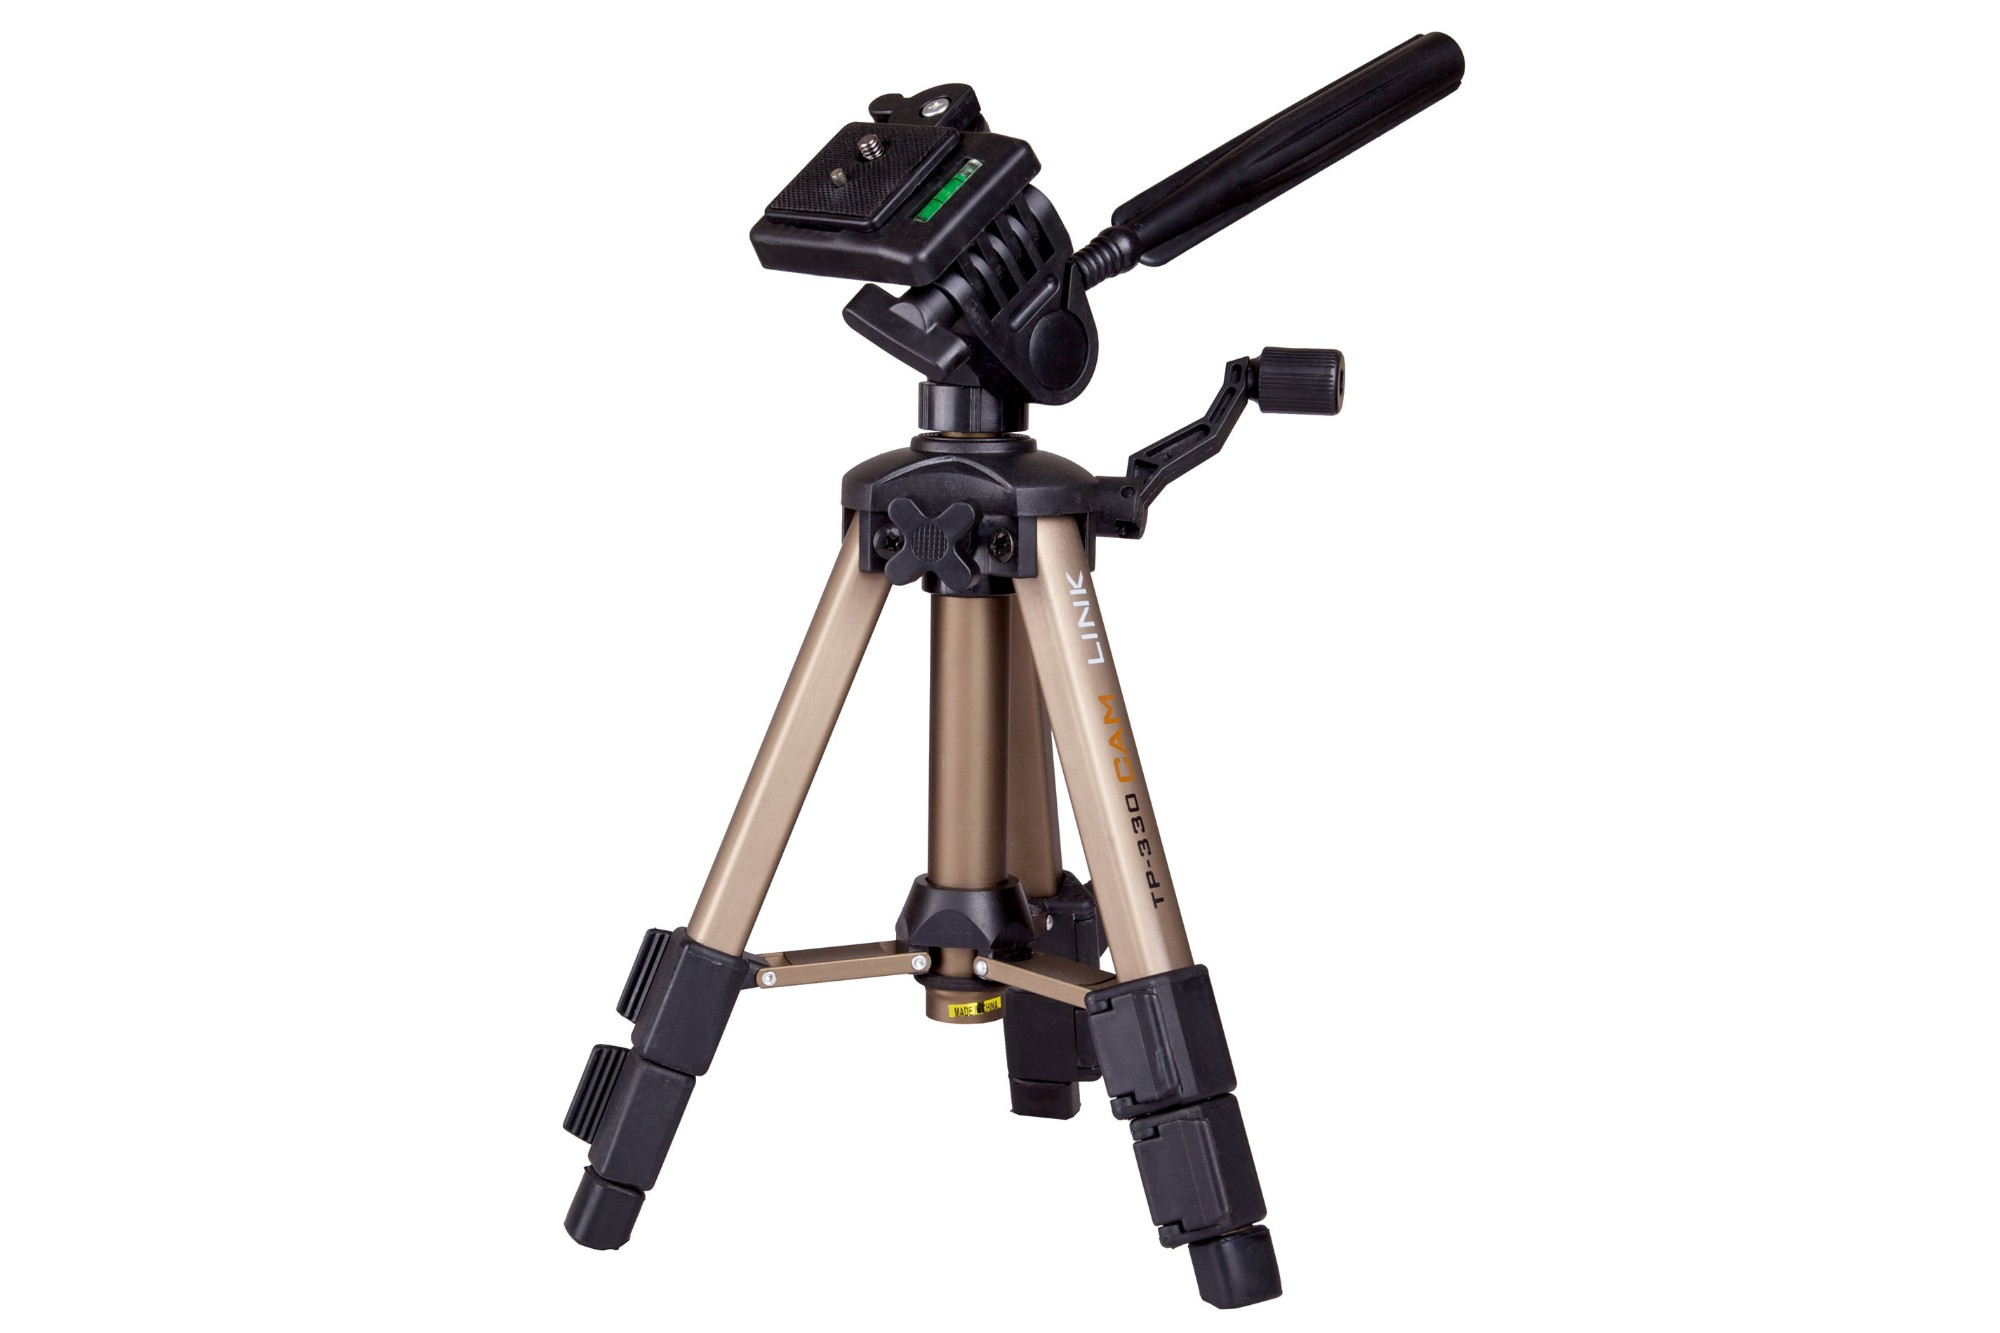 CamLink TP330 Table Desk Top Tripod